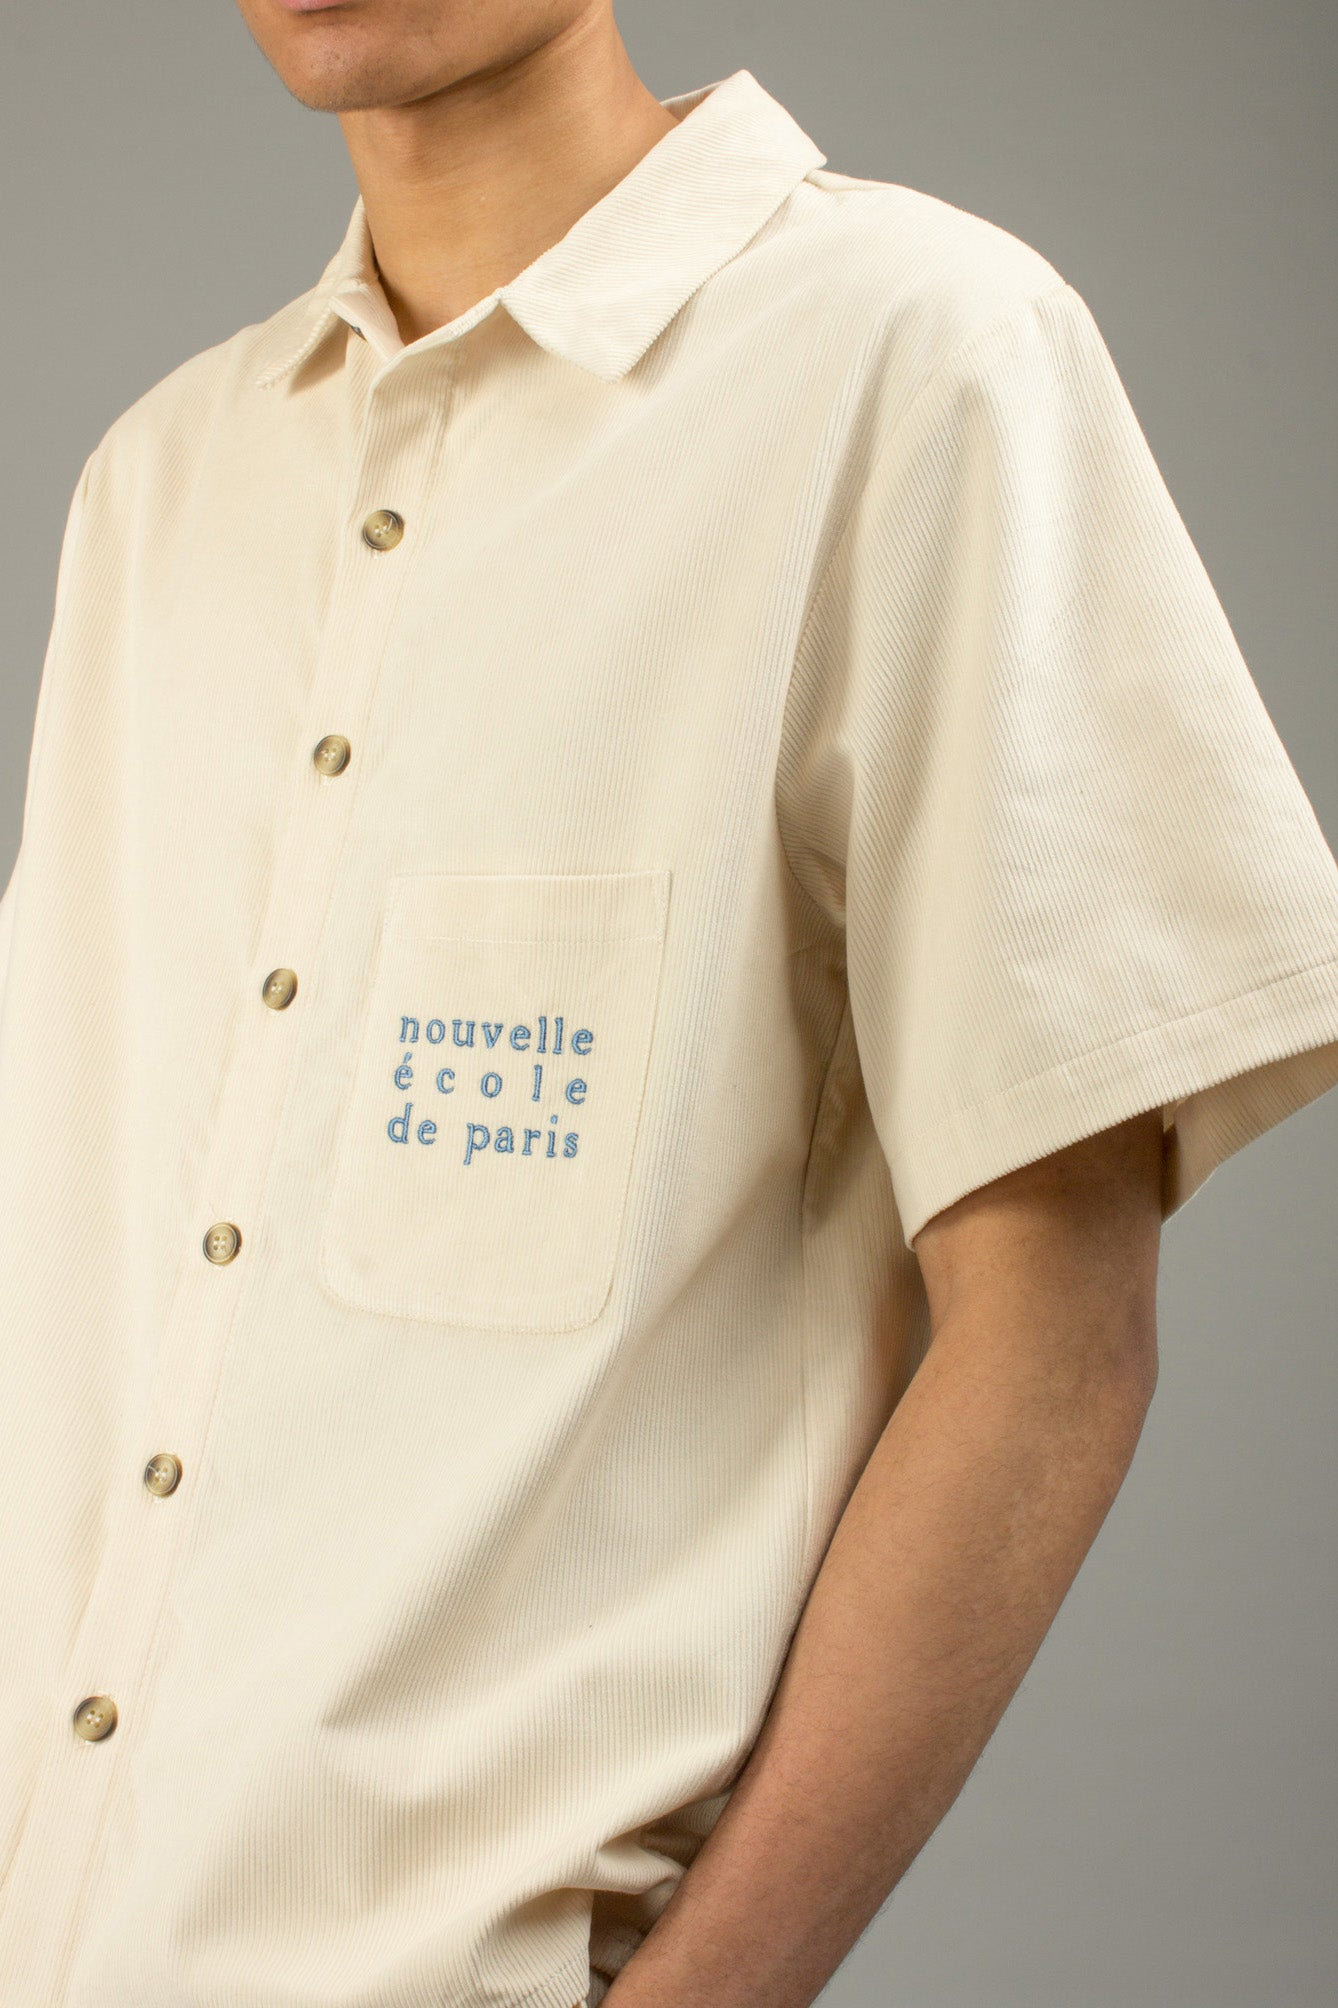 OFF-WHITE CORDUROY SHIRT